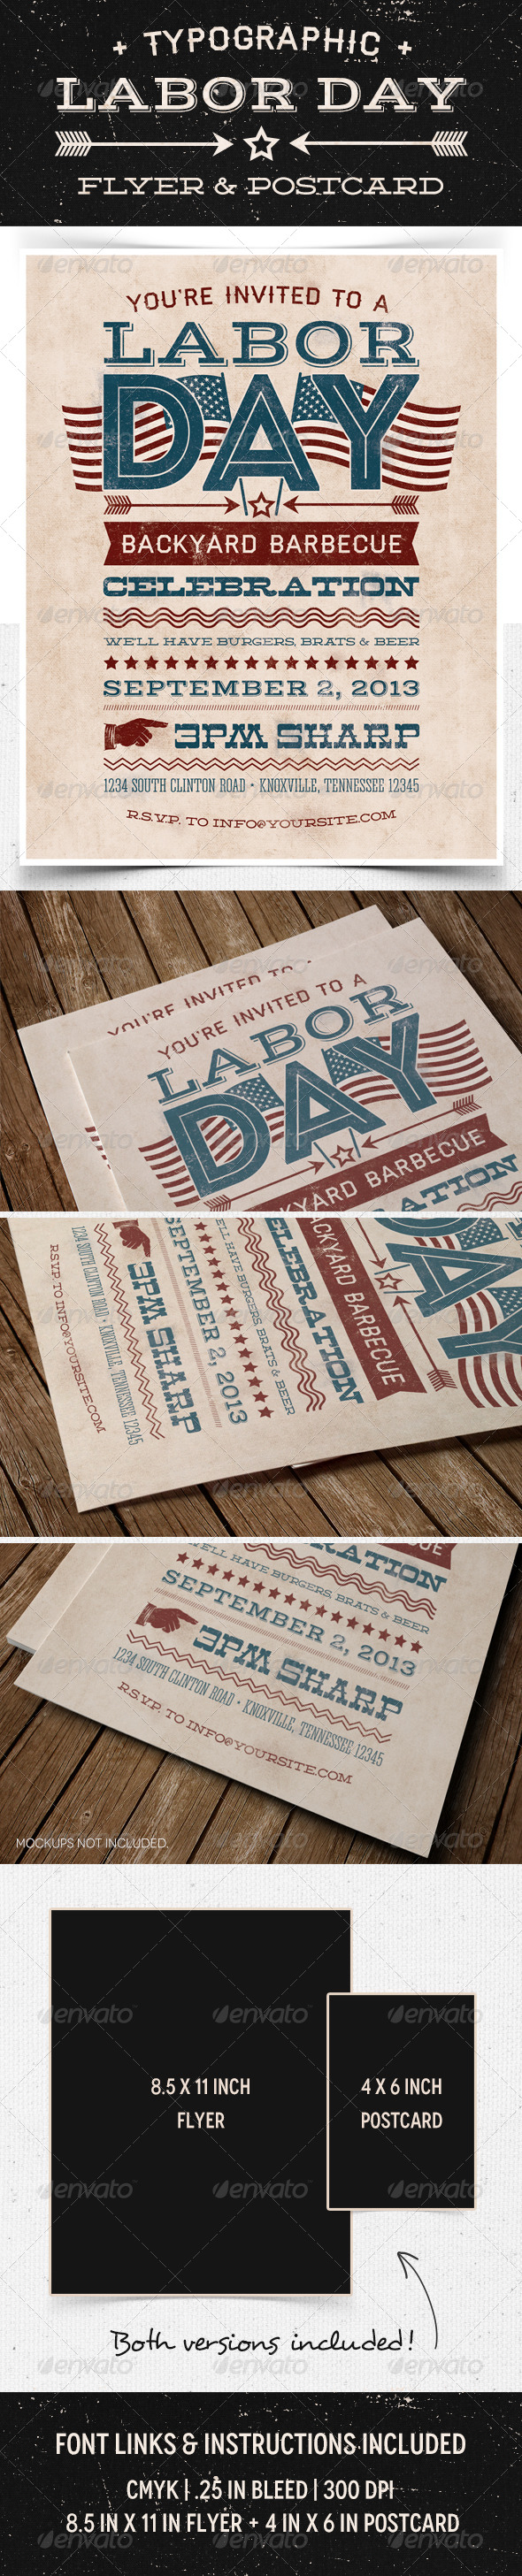 GraphicRiver Labor Day Flyer & Postcard 5296744